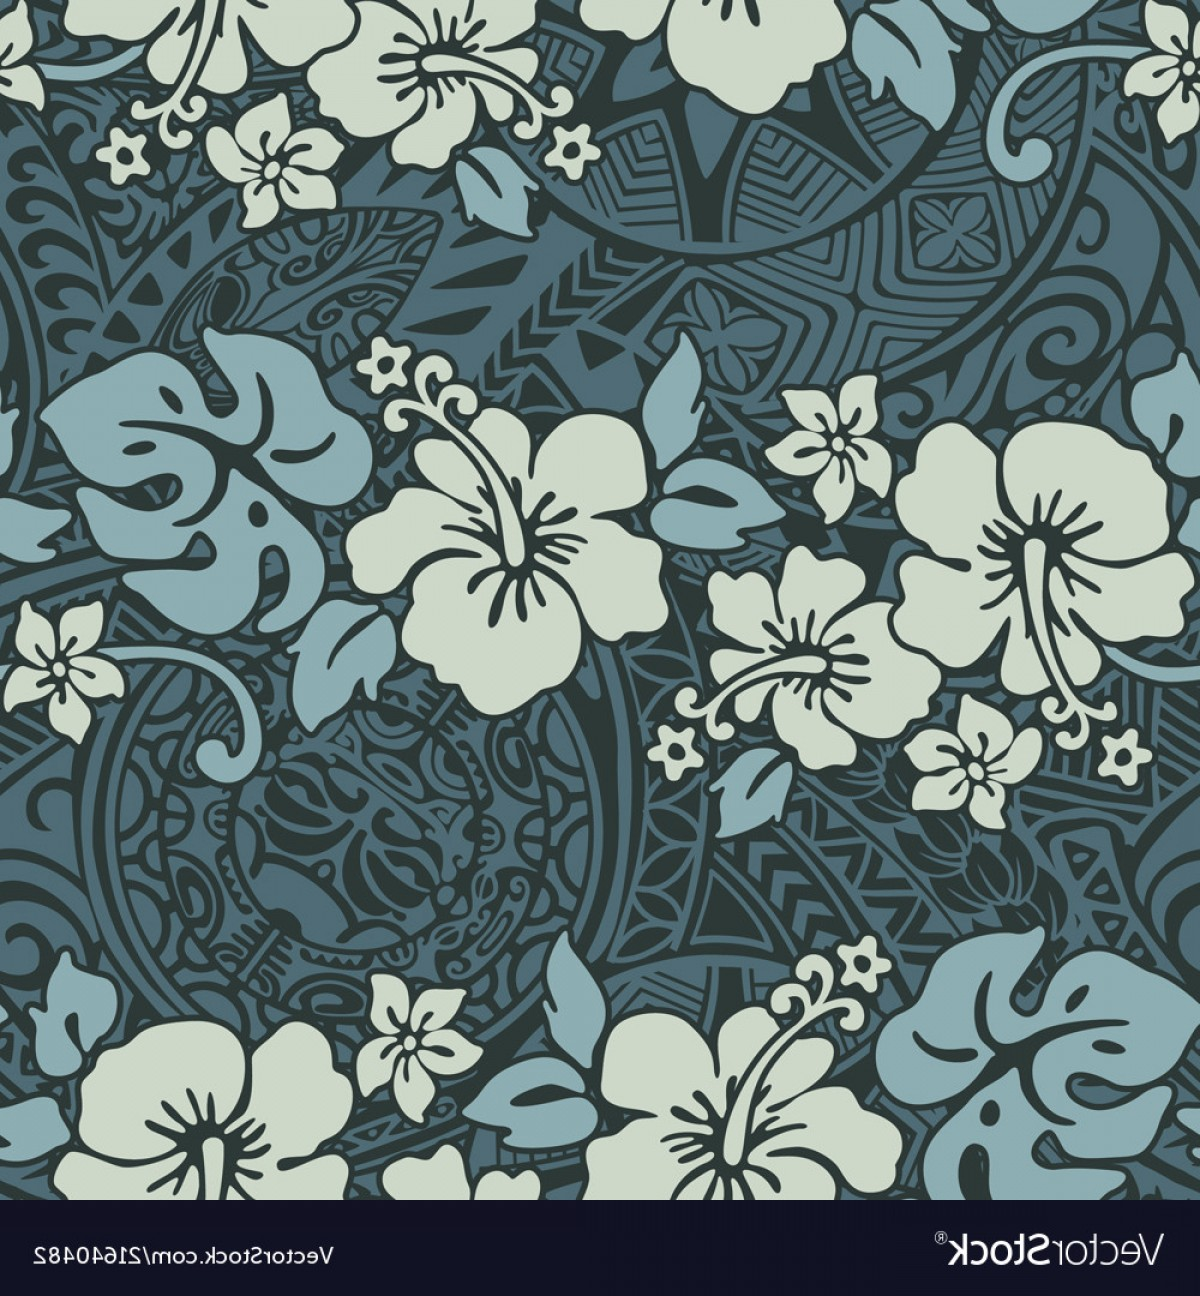 Hawaii State Flower Vector Art: Vintage Hibiscus Flowers With Tribal Background Vector